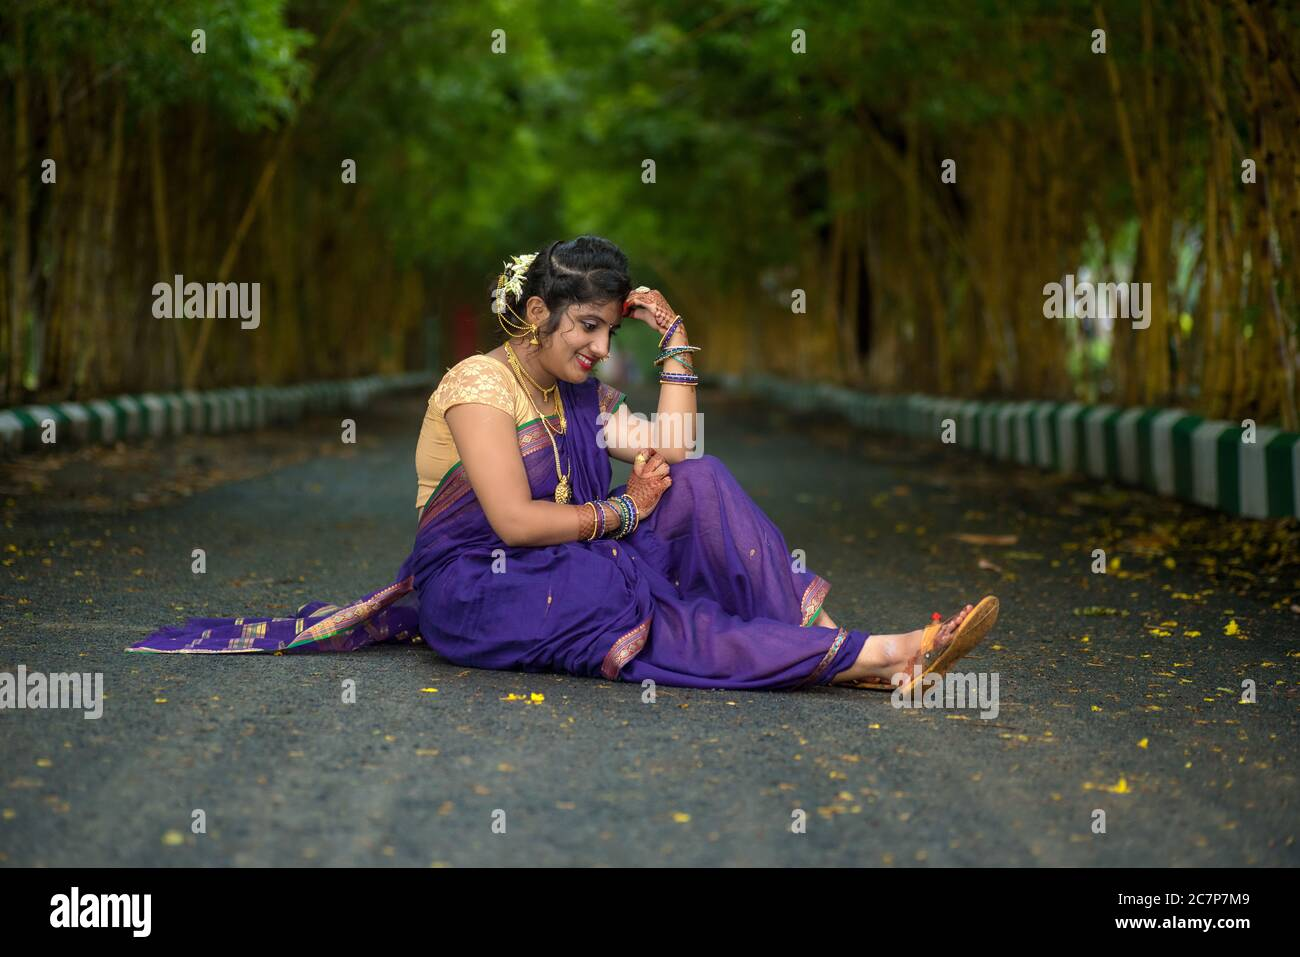 Women In Saree Posing In High Resolution Stock Photography And Images Alamy 1 what is photo poses? https www alamy com indian traditional beautiful young girl in saree posing outdoors image366209321 html